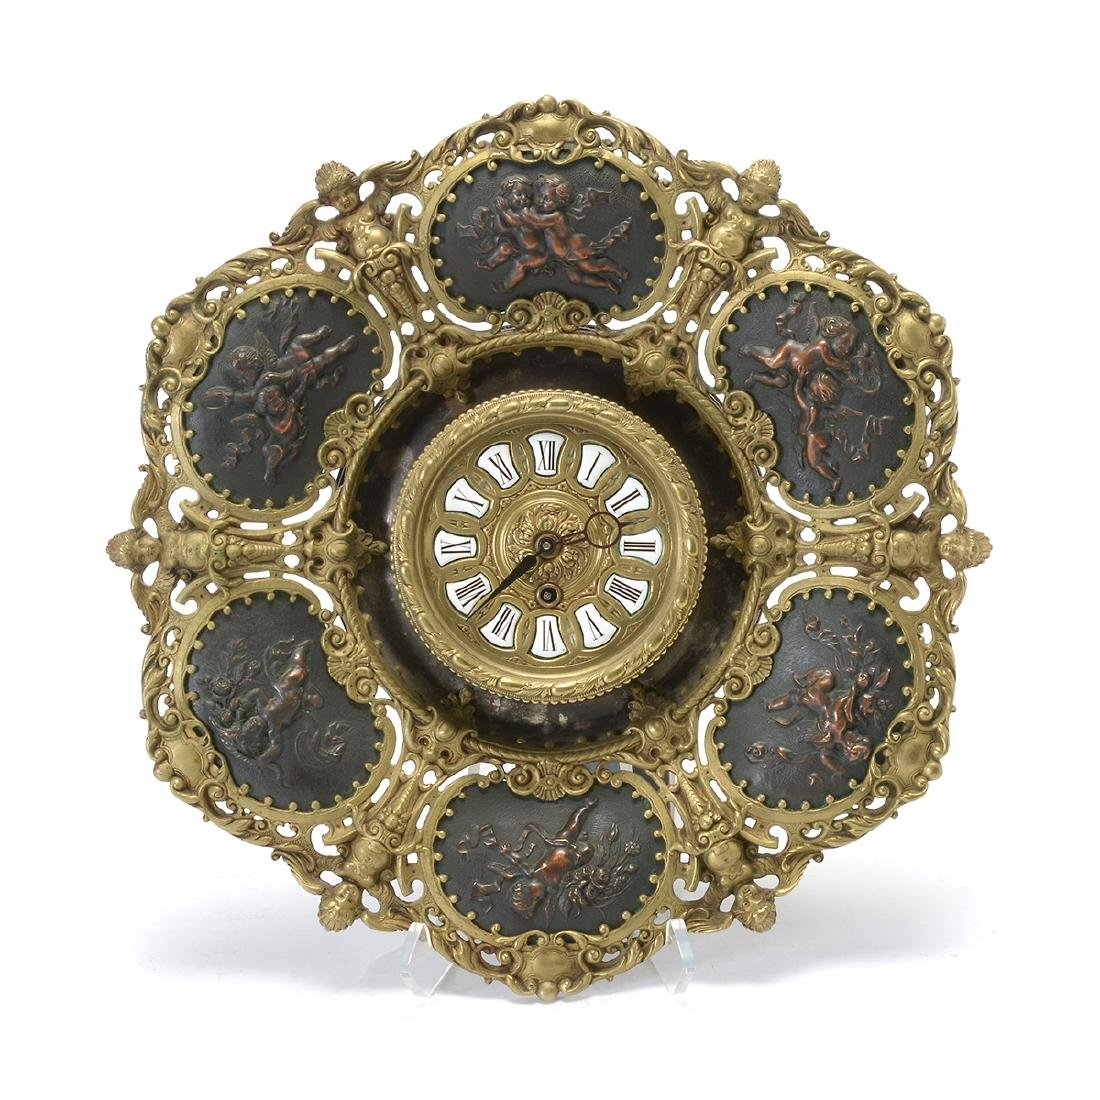 German Rococo Revival Gilt Metal Wall Clock